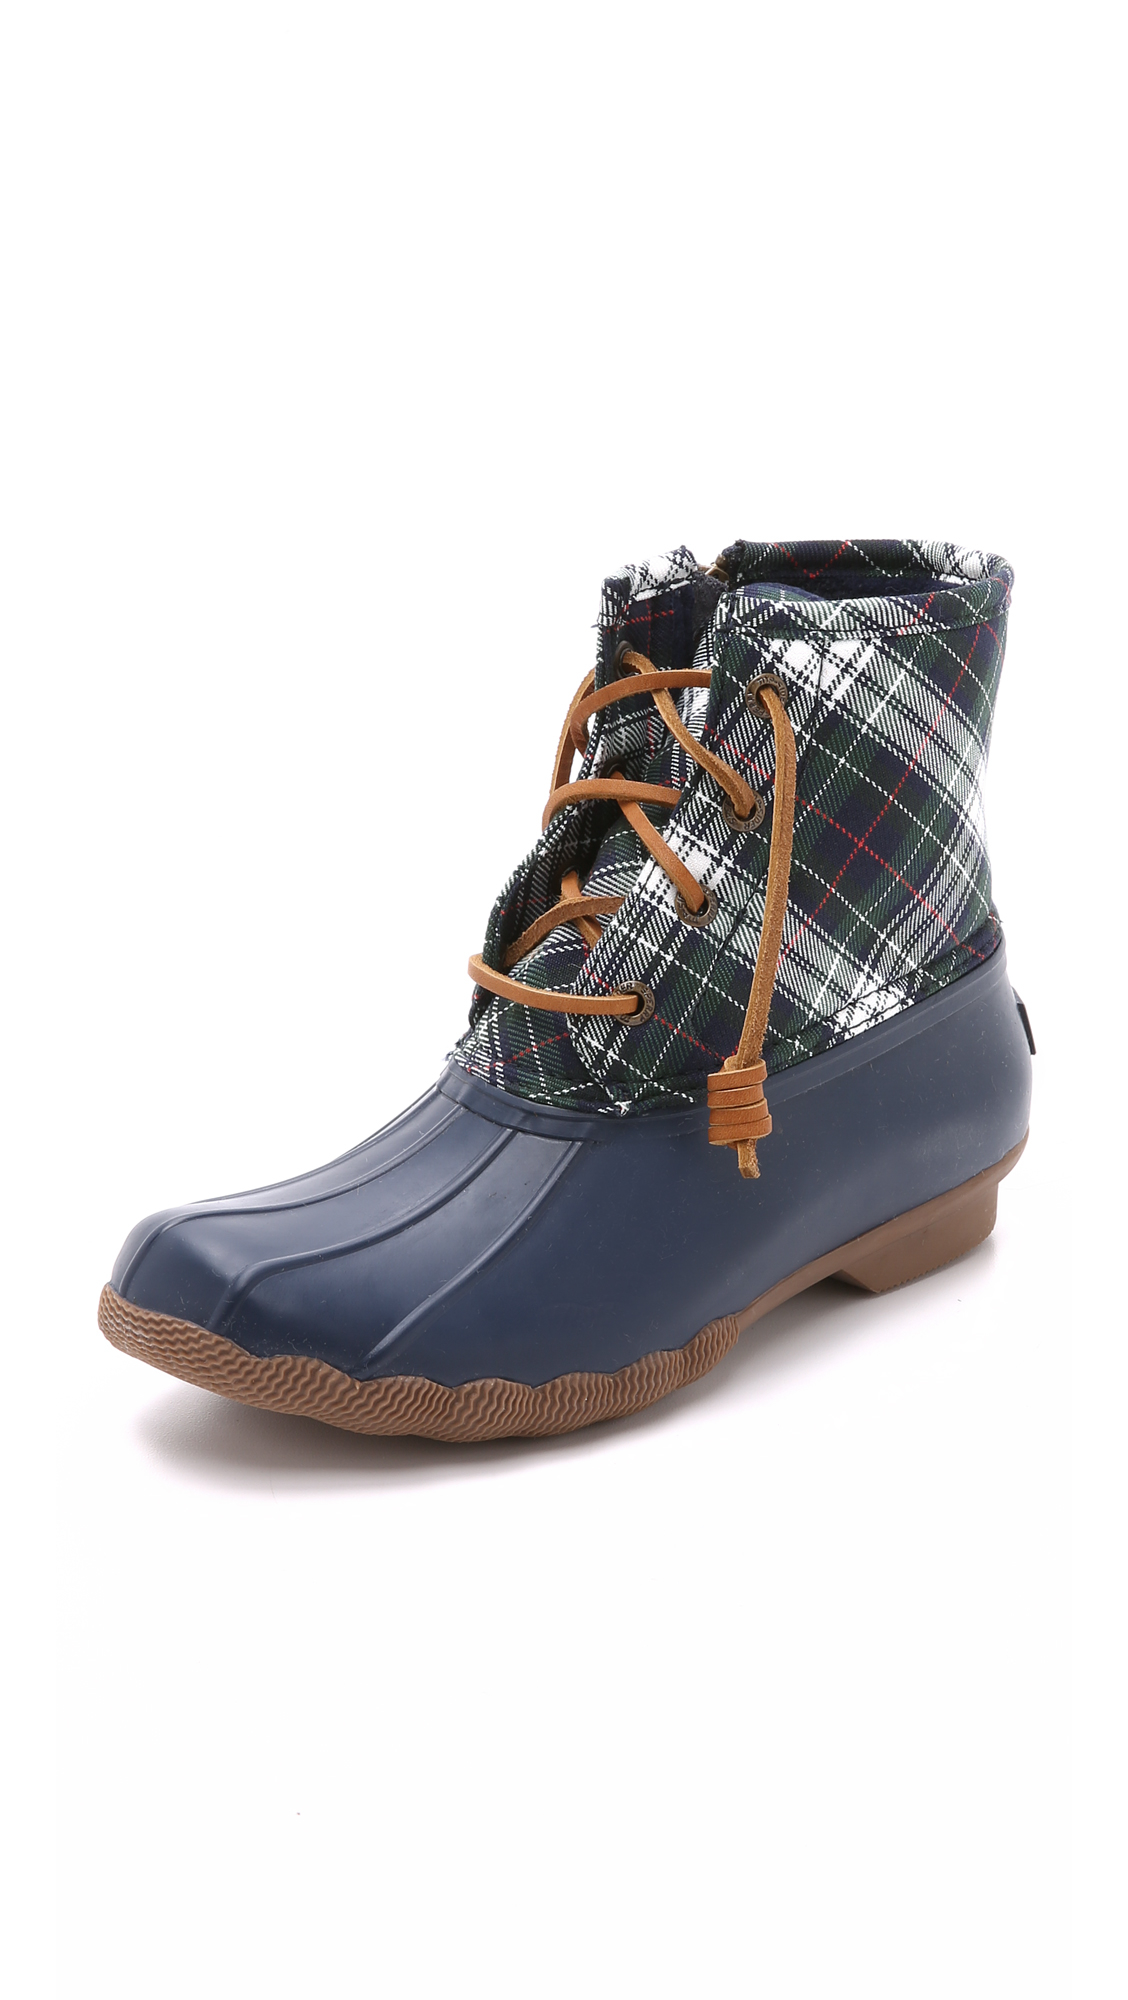 Sperry Top-Sider Saltwater Plaid Water-Resistant Boots in Navy/Green (Blue)